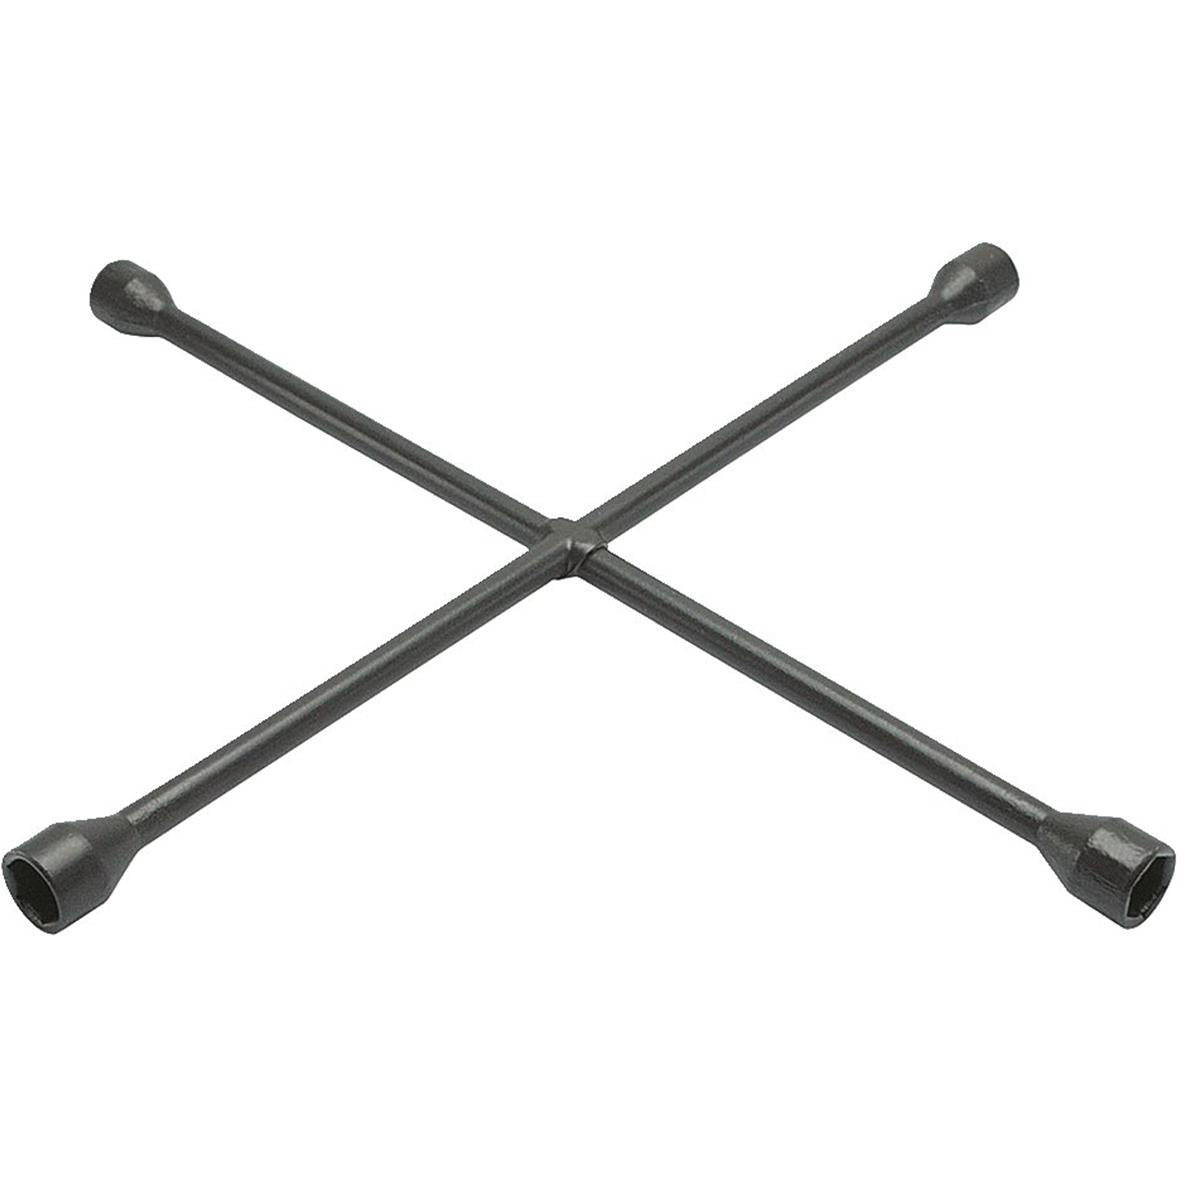 KEN-TOOL Semi Truck 4-Way Lug Wrench